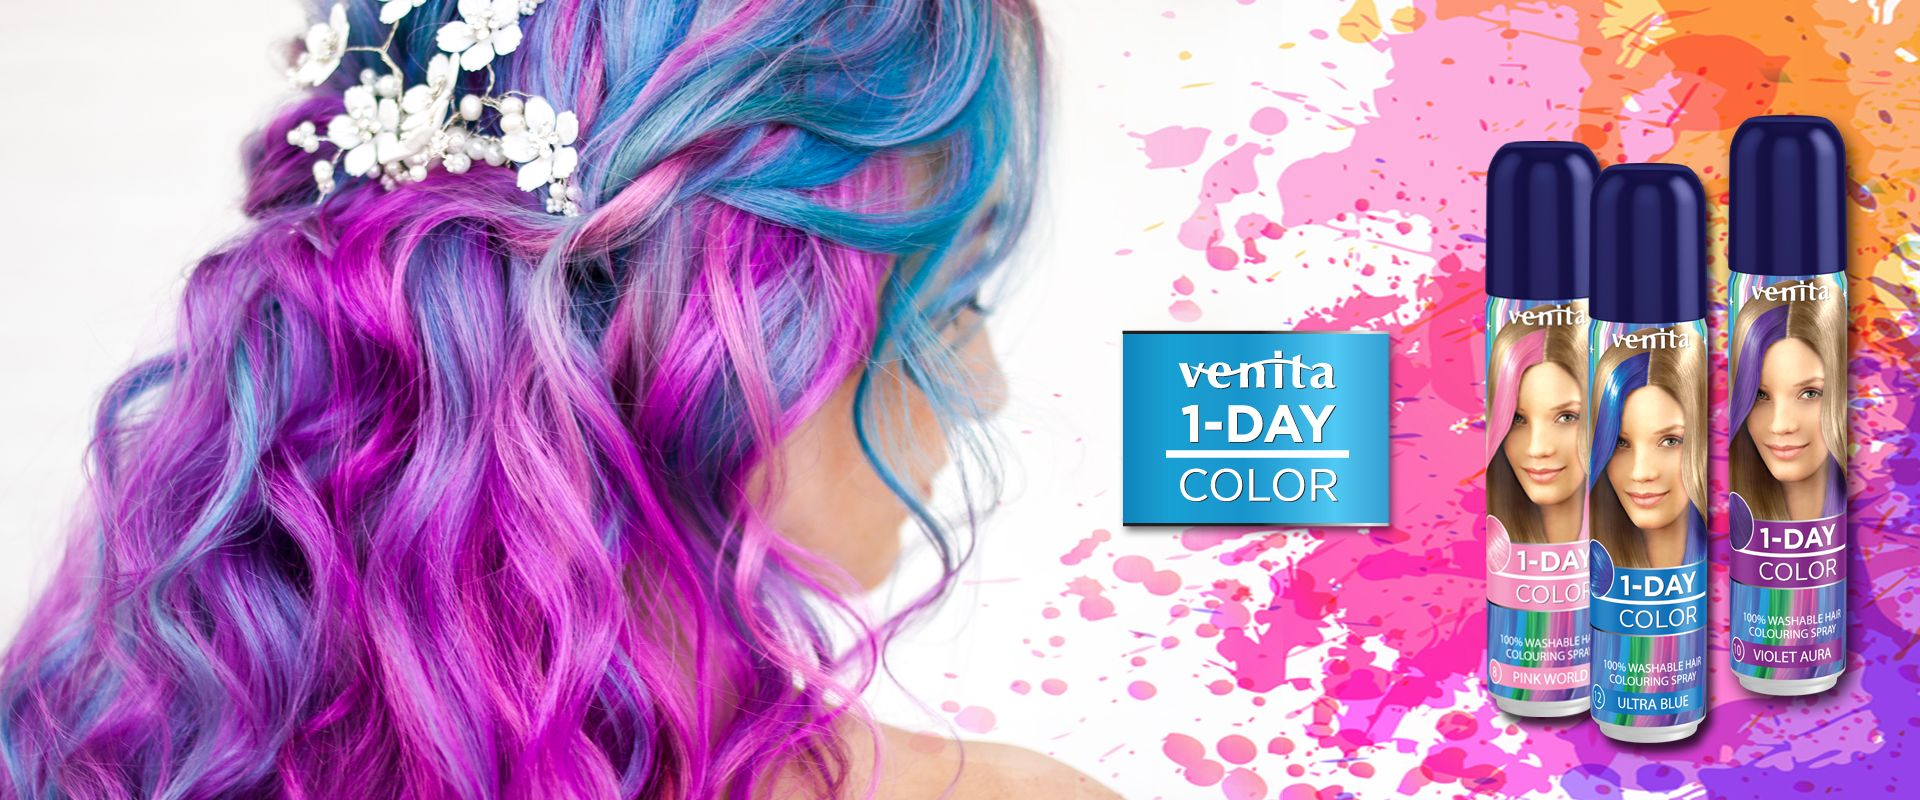 There is a young woman with colorful long hair and one day colour hair sprays